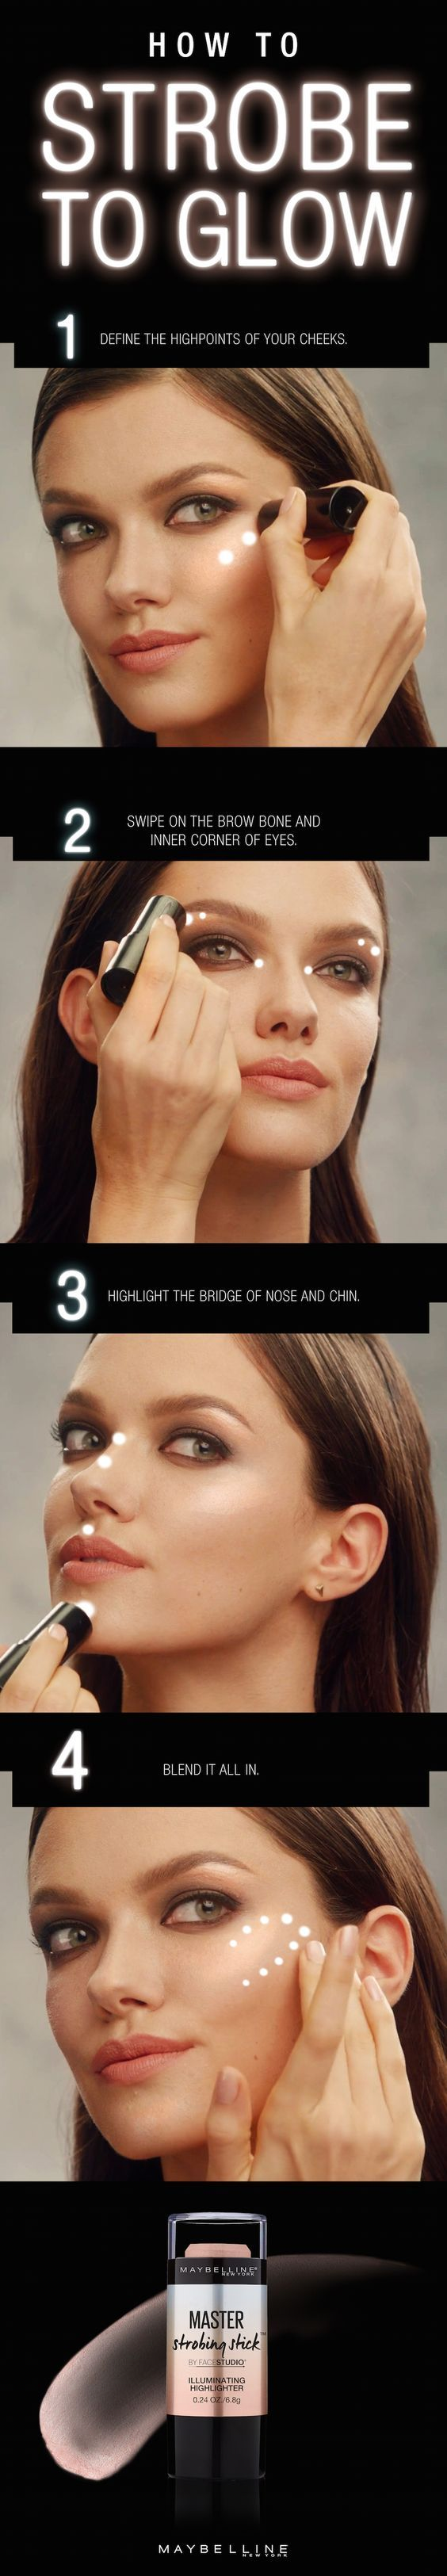 The perfect base for any Valentine's Day makeup look is gorgeous, glowing skin.  To achieve the perfect fresh faced look, use Maybelline Master Strobing Stick.  First, define the high points of your cheeks.  Swipe on the brow bone and inner corners or eyes.  Highlight eh bridge of the nose and chin.  Then, use your finger and tap to blend it all in.  Now you're ready to strobe to glow!